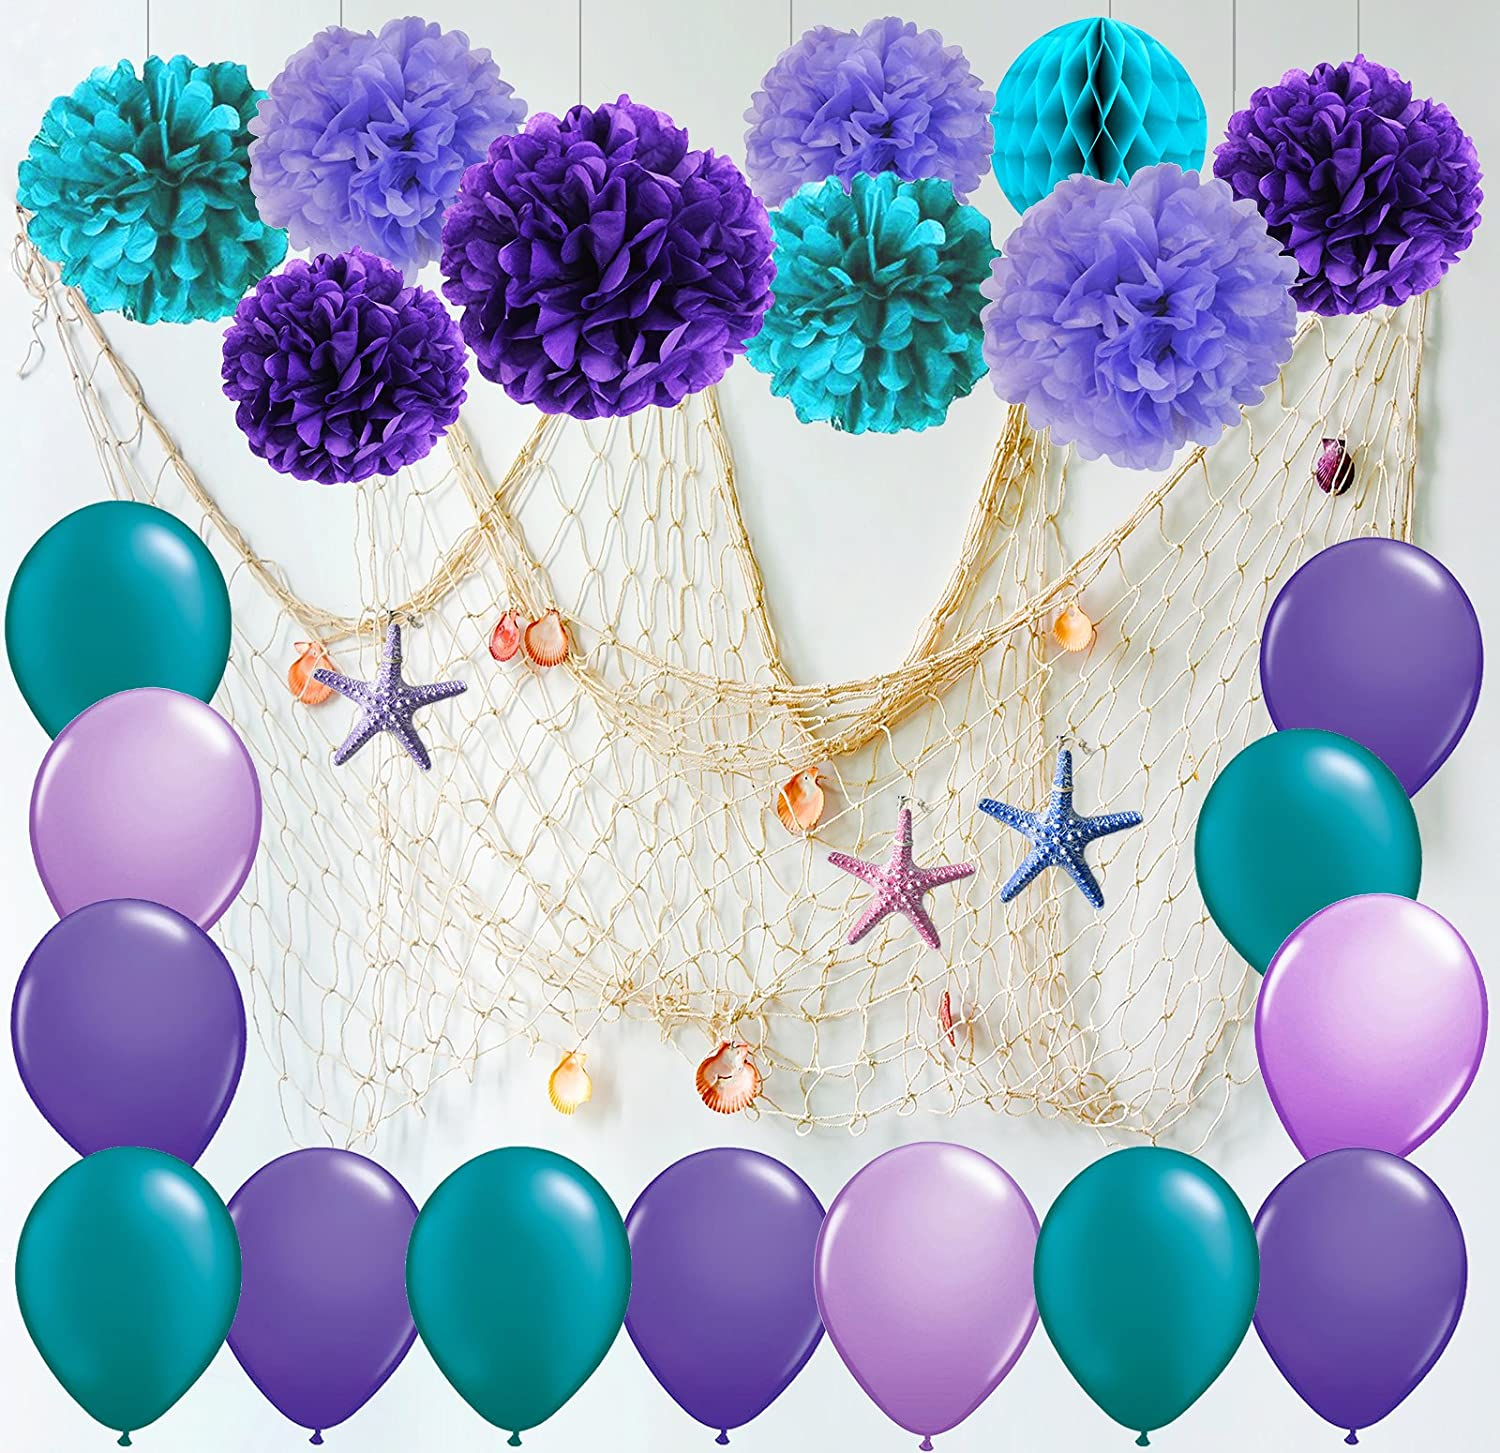 Furuix Mermaid Party Decorations/Under the Sea Party Teal Lavender Purple Tissue Paper Pom Pom Latex Balloons Fish Net with Shells and starffor Mermaid Birthday Decor Baby Shower Decorations (White)